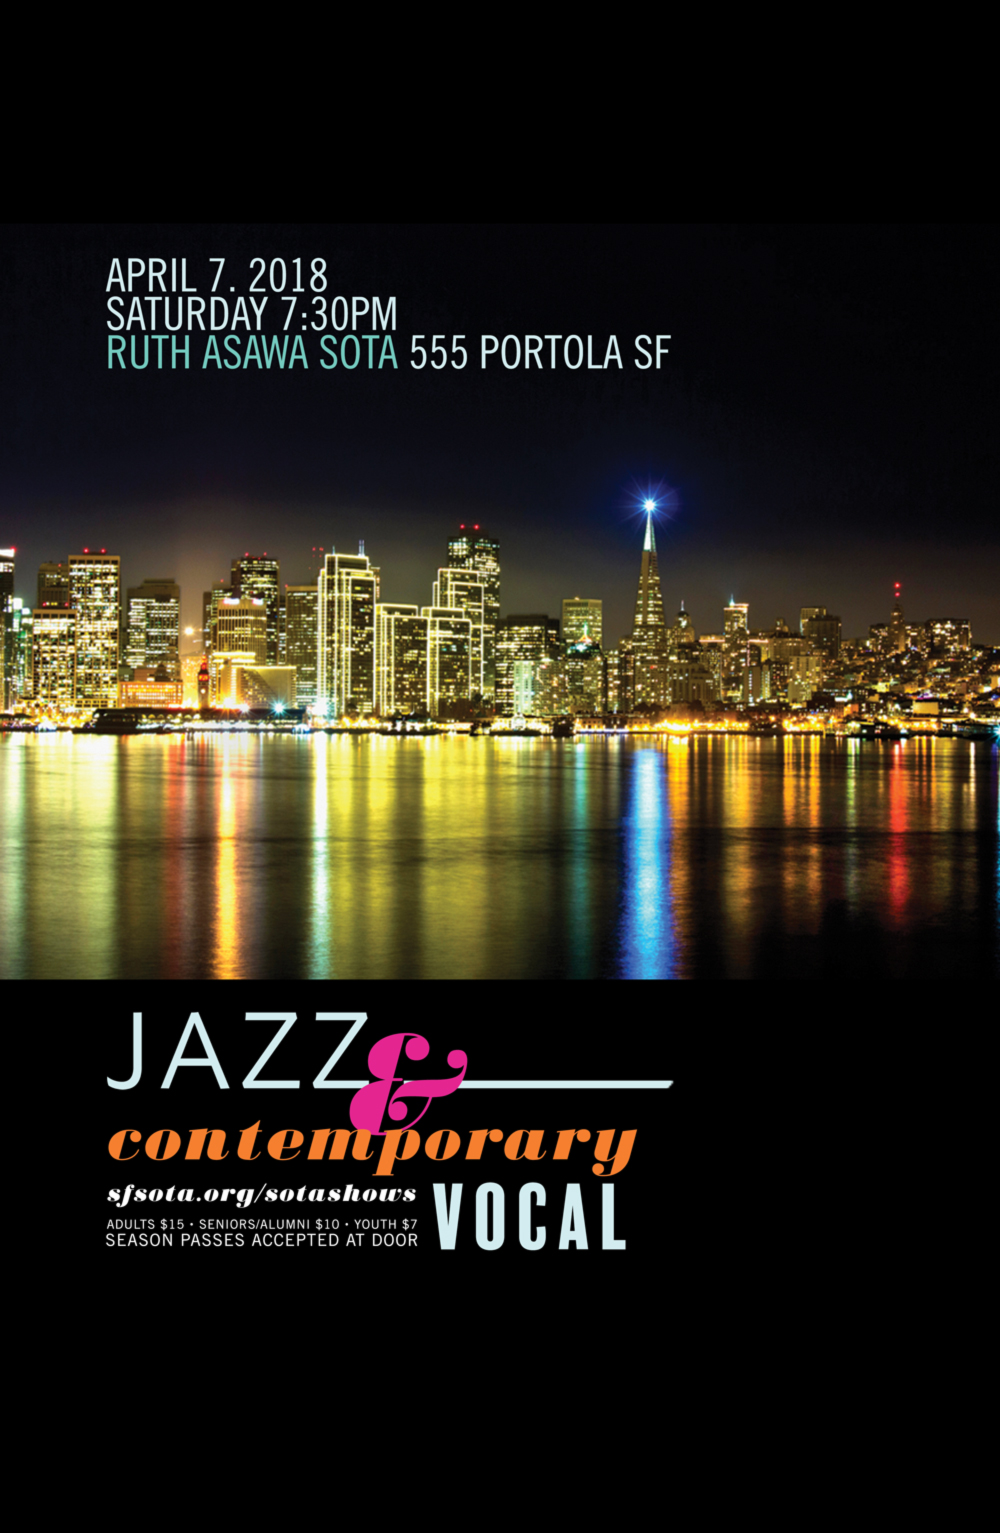 W-JAZZ-VOCAL-SPRING-POSTER.jpg